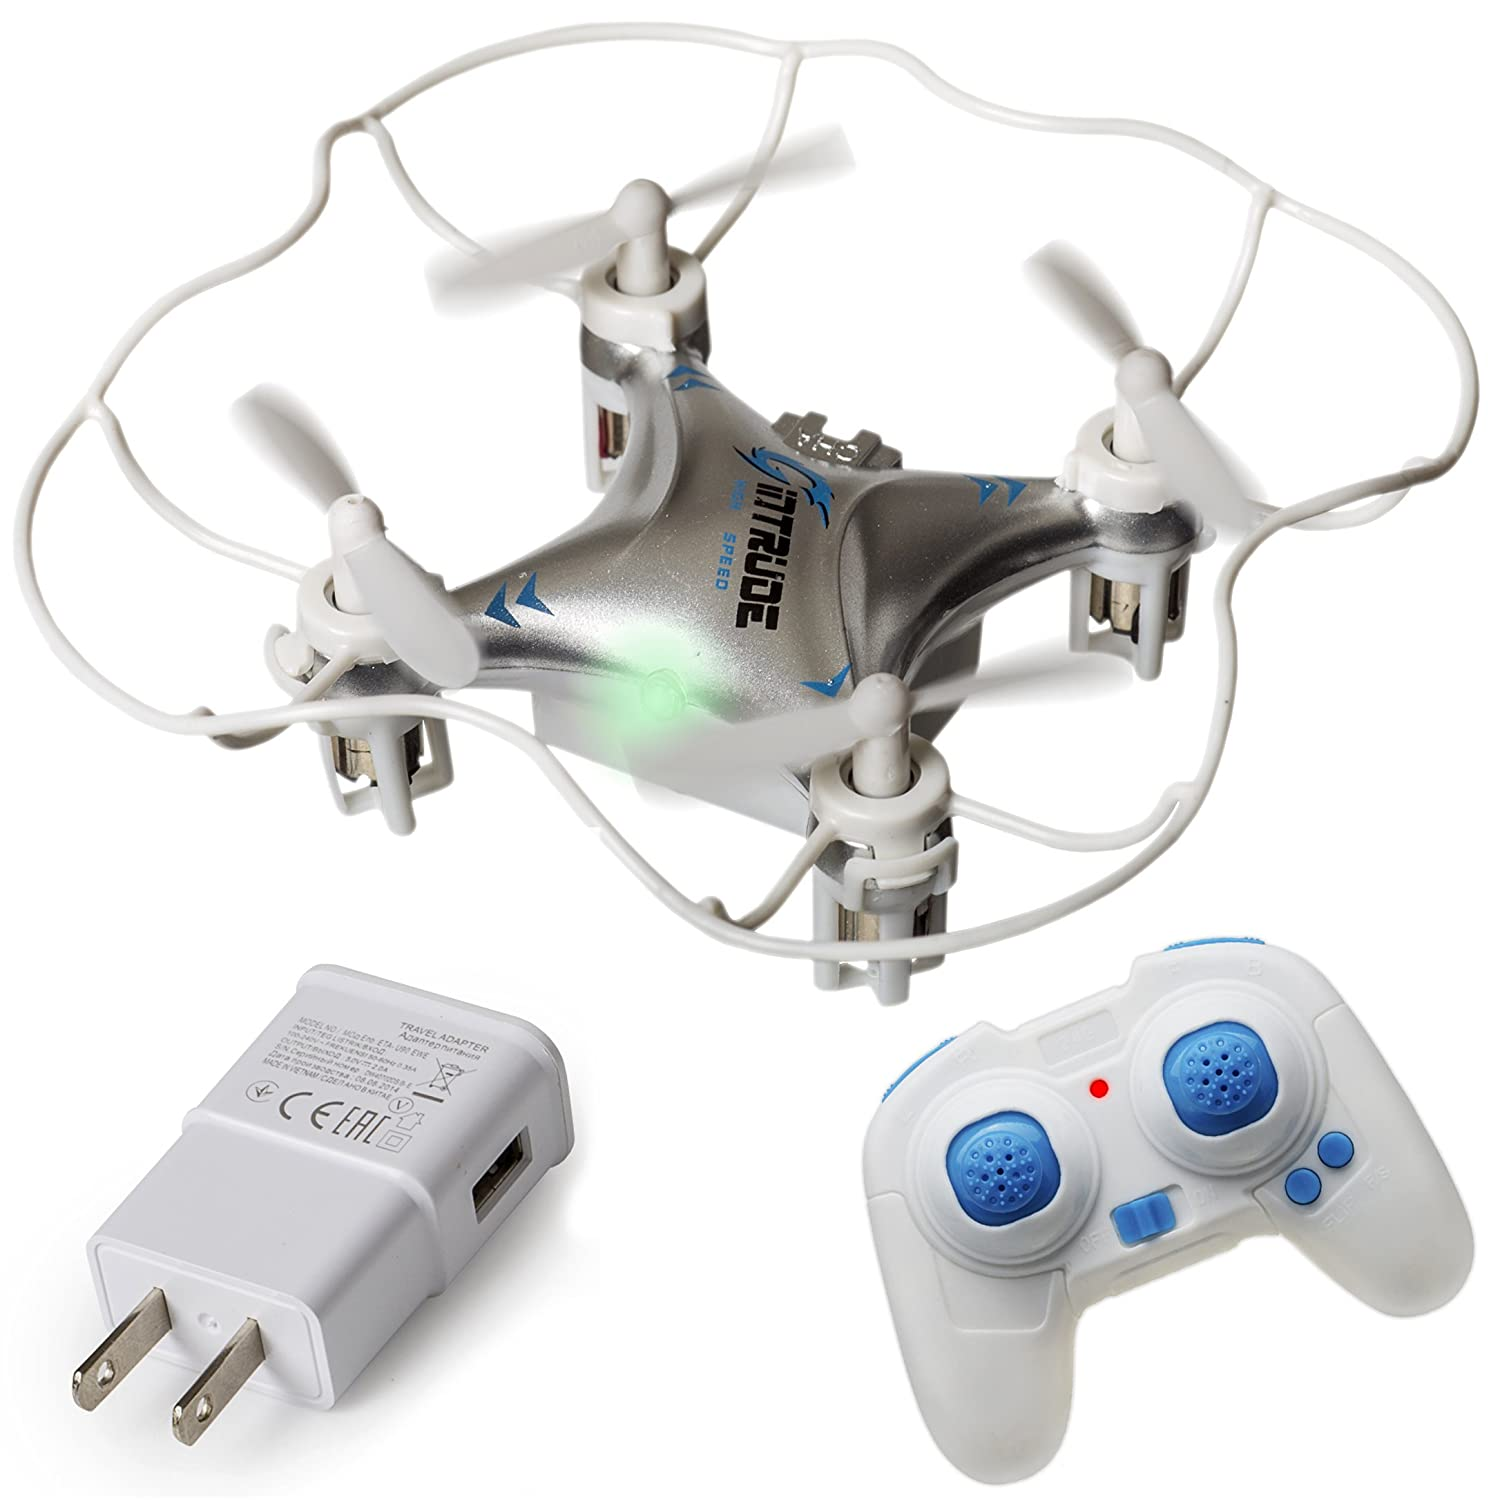 Easy-to-Use 6-Axis Gyro Advanced Stunt Controller LED Light System by Duddy duddy-cam Small Beginner Flying RC Helicopter Drone for Kids and Adults Mini Quadcopter Drone Rugged FREE Wall Charger